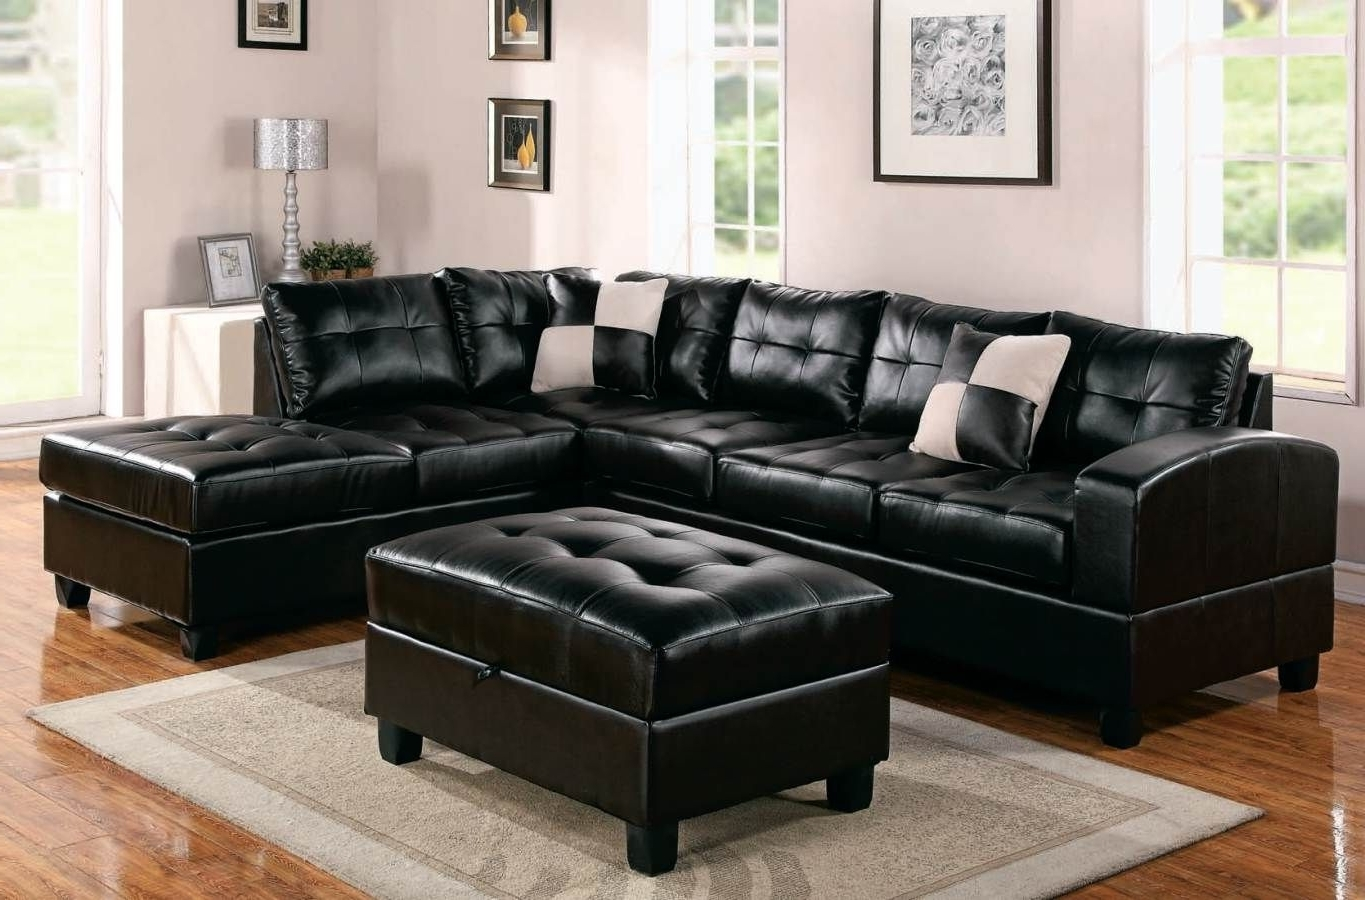 Black Leather Sectionals With Ottoman Inside Fashionable Oversized Black Leather Sectional Sofa With Tables (View 3 of 15)